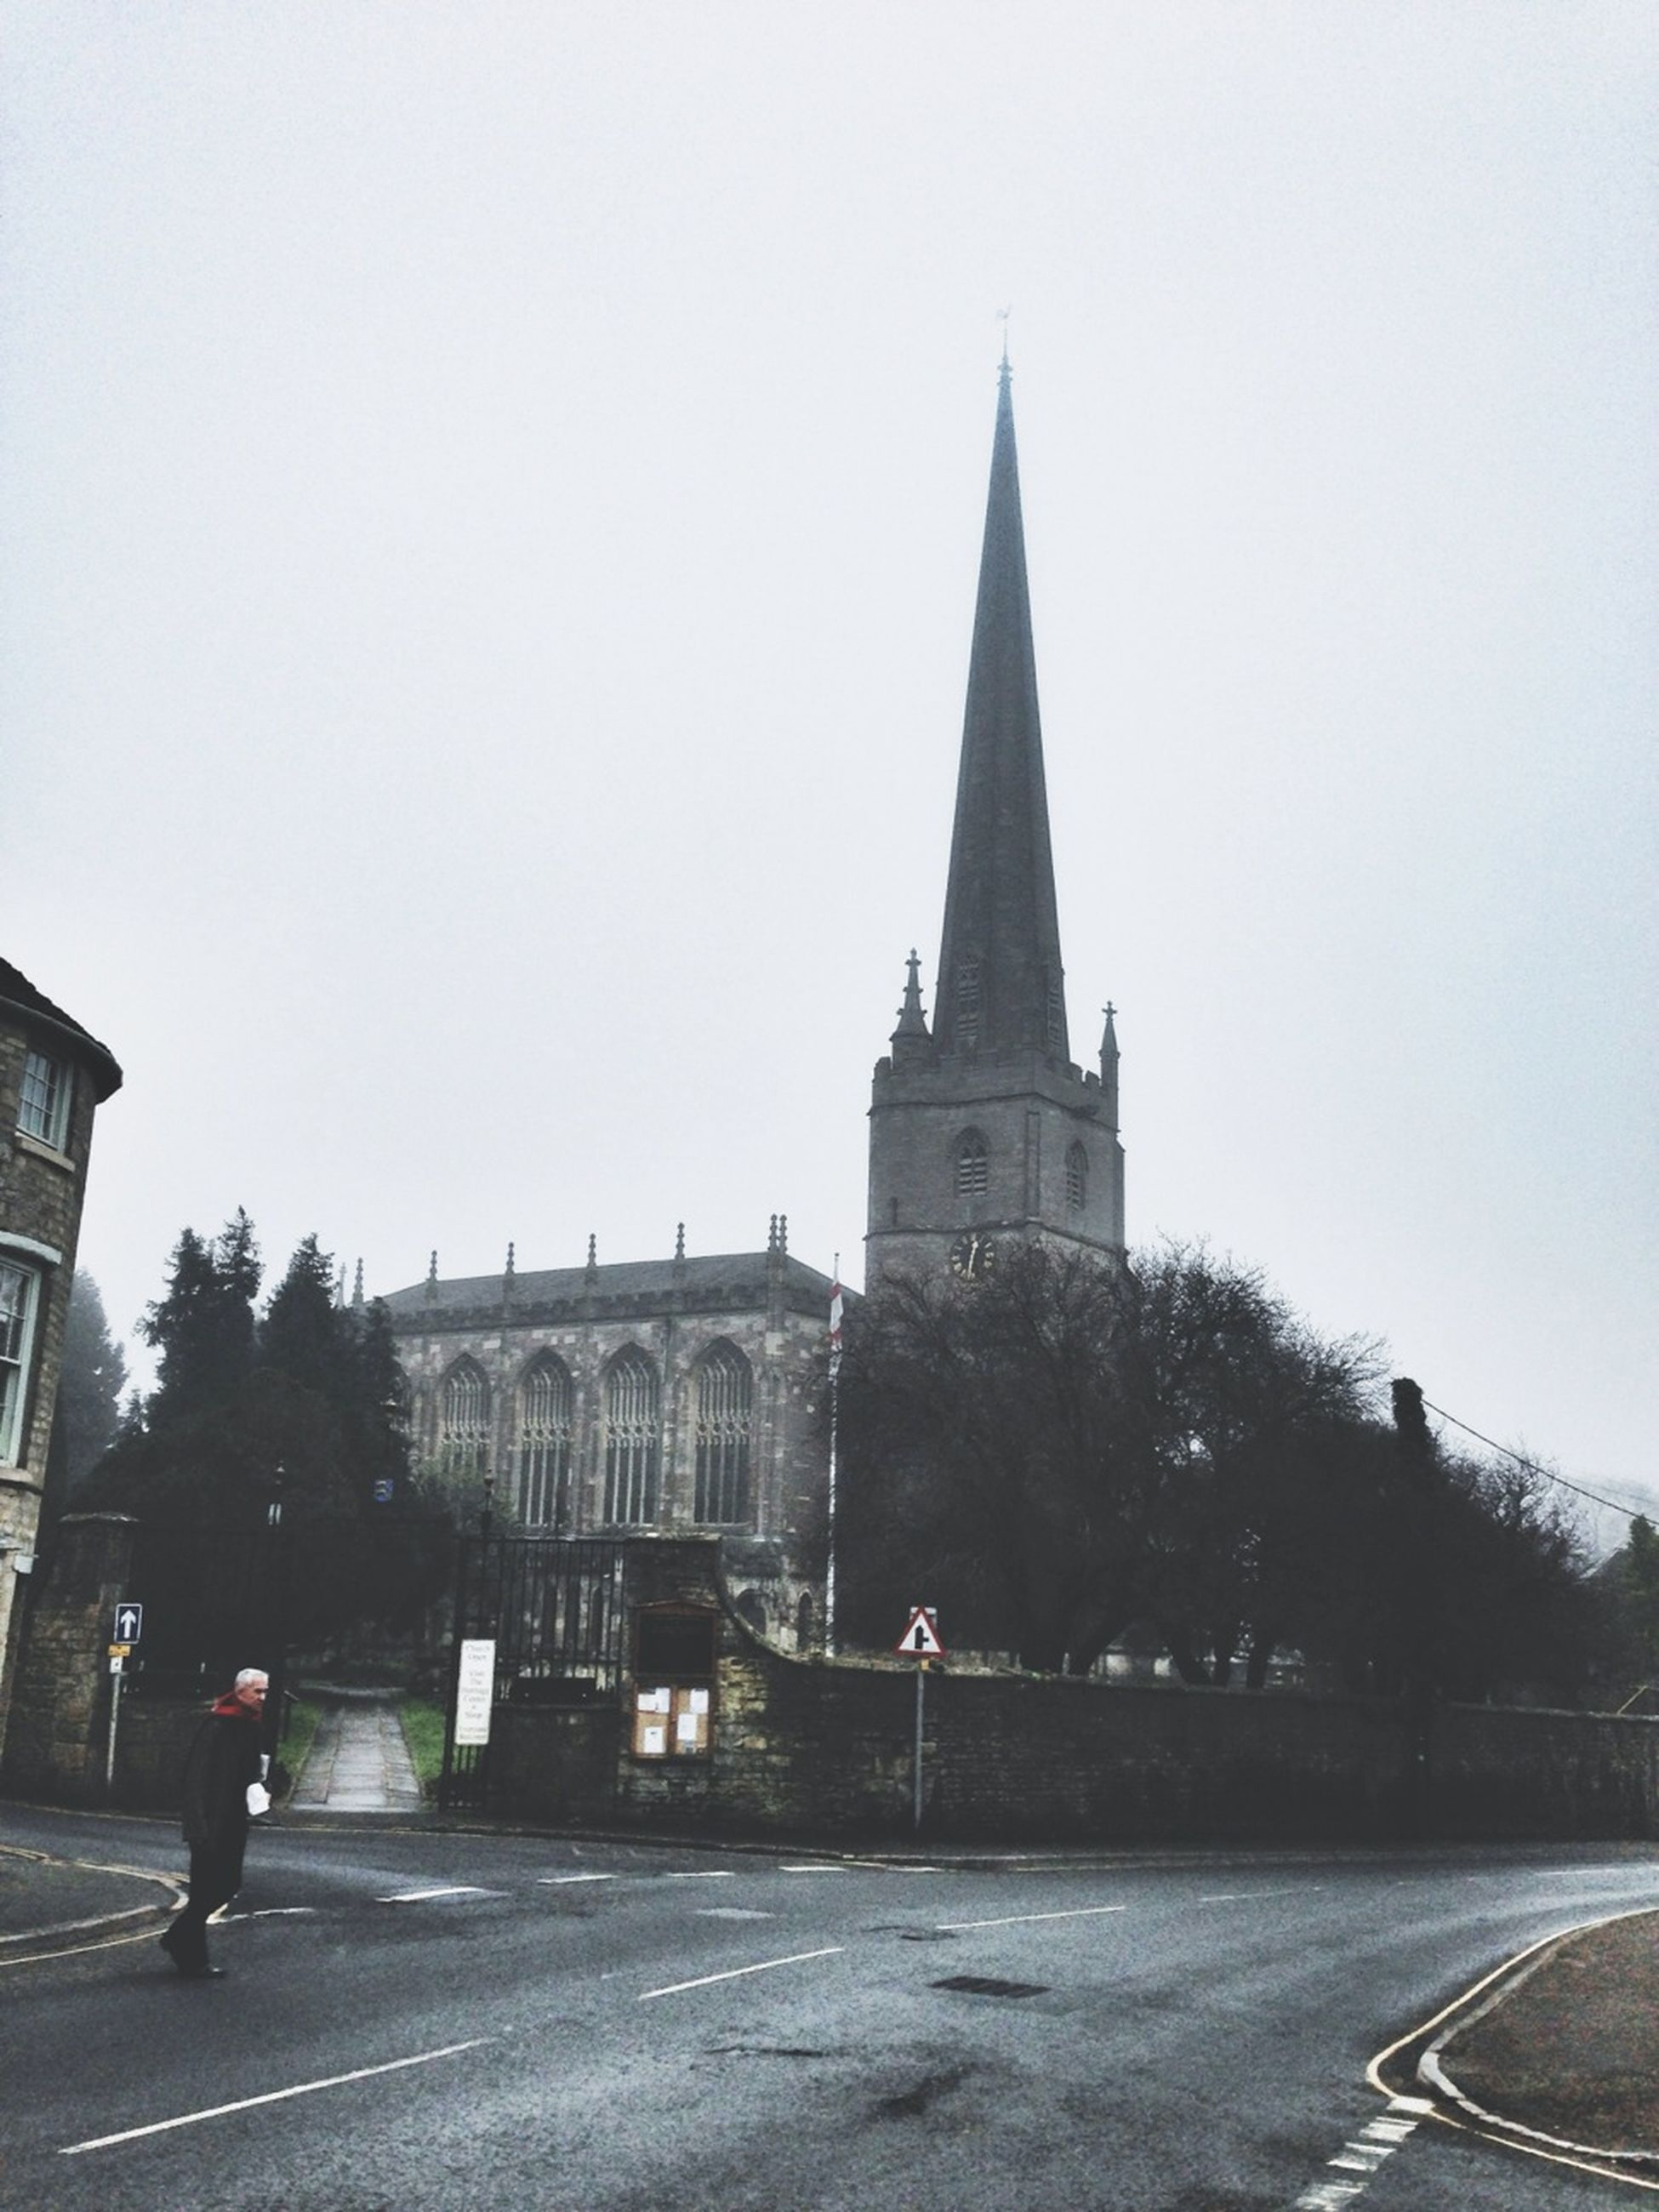 building exterior, architecture, clear sky, built structure, church, road, religion, transportation, place of worship, street, copy space, spirituality, the way forward, sky, incidental people, car, tree, road marking